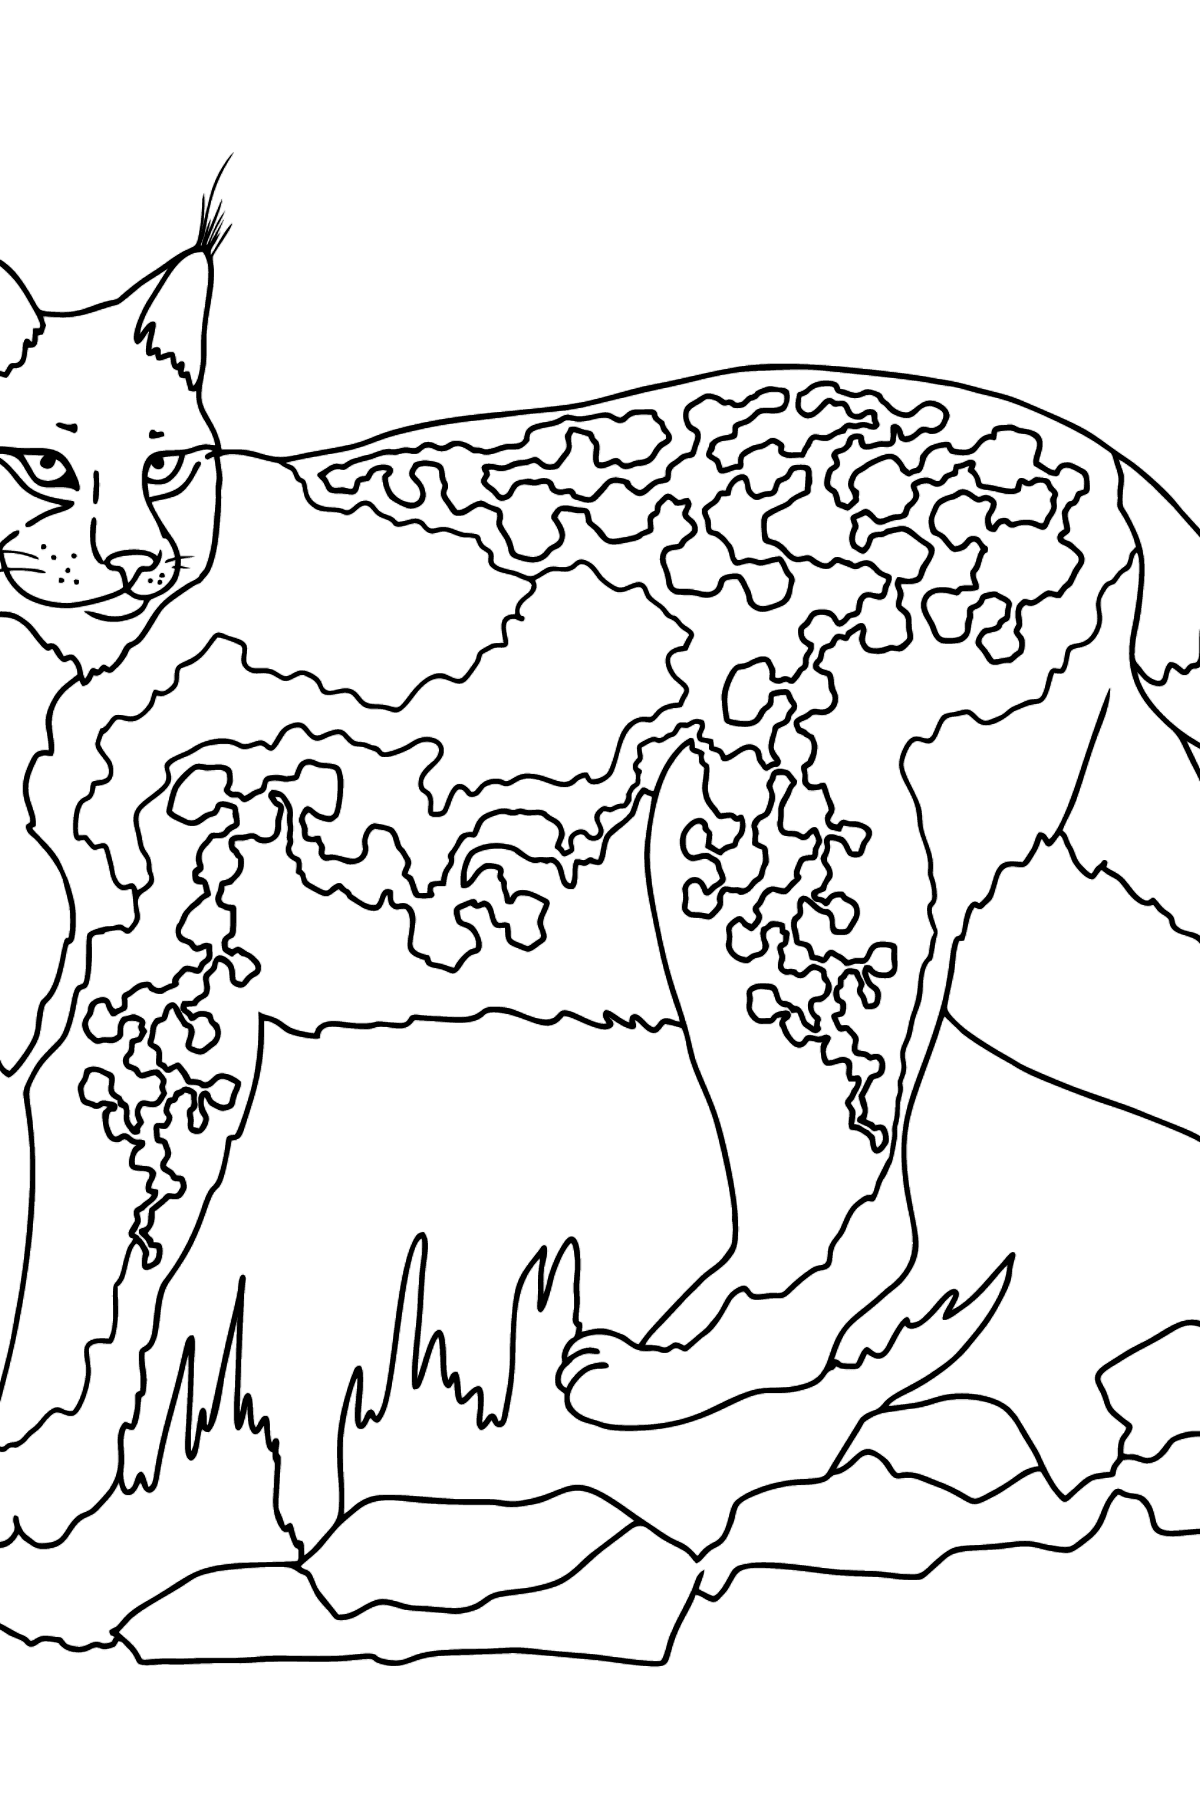 Coloring Page - A Wild Lynx - Coloring Pages for Kids